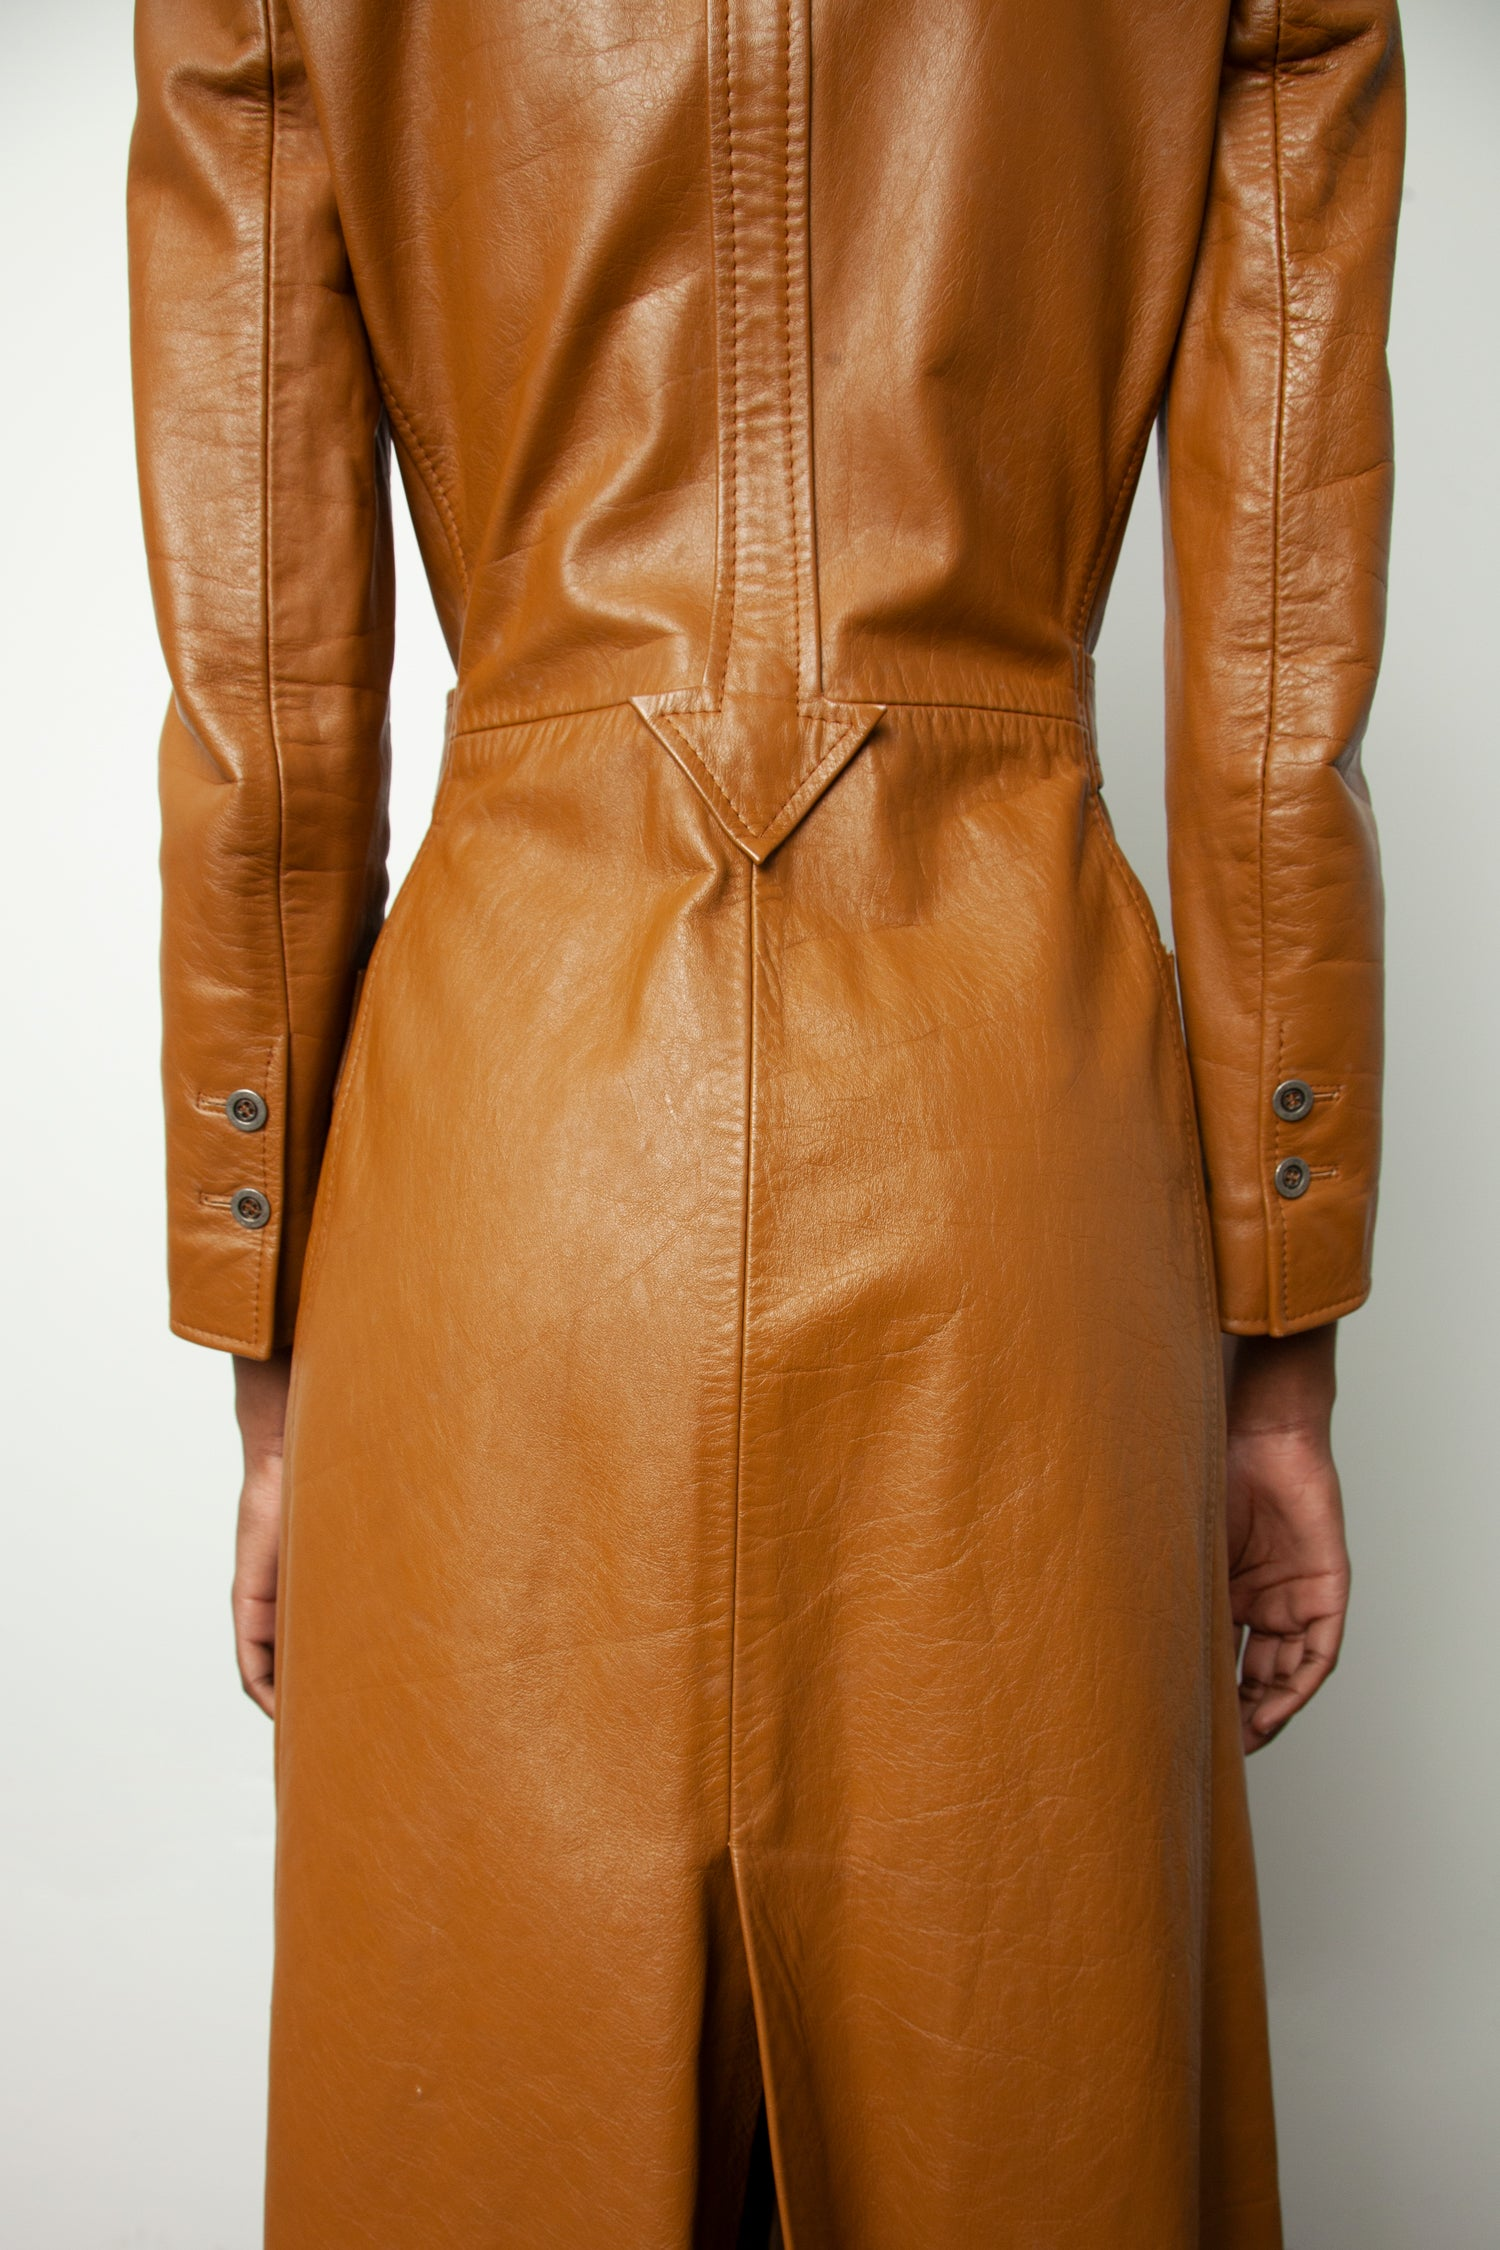 MERIVALE LEATHER COAT